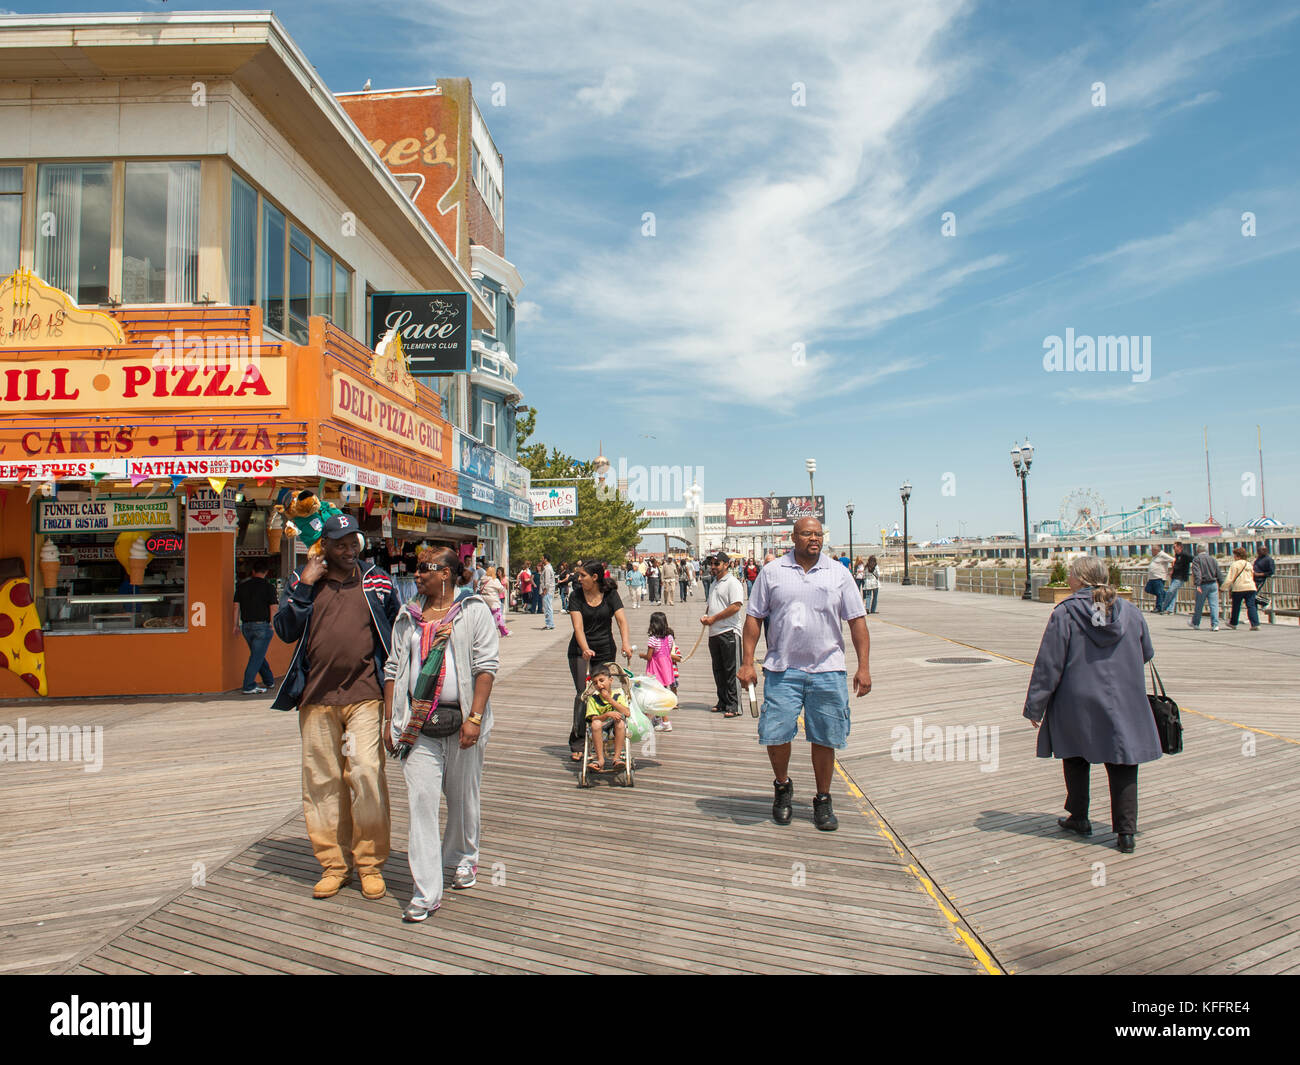 On the Boardwalk in Atlantic City, New Jersey, USA - Stock Image